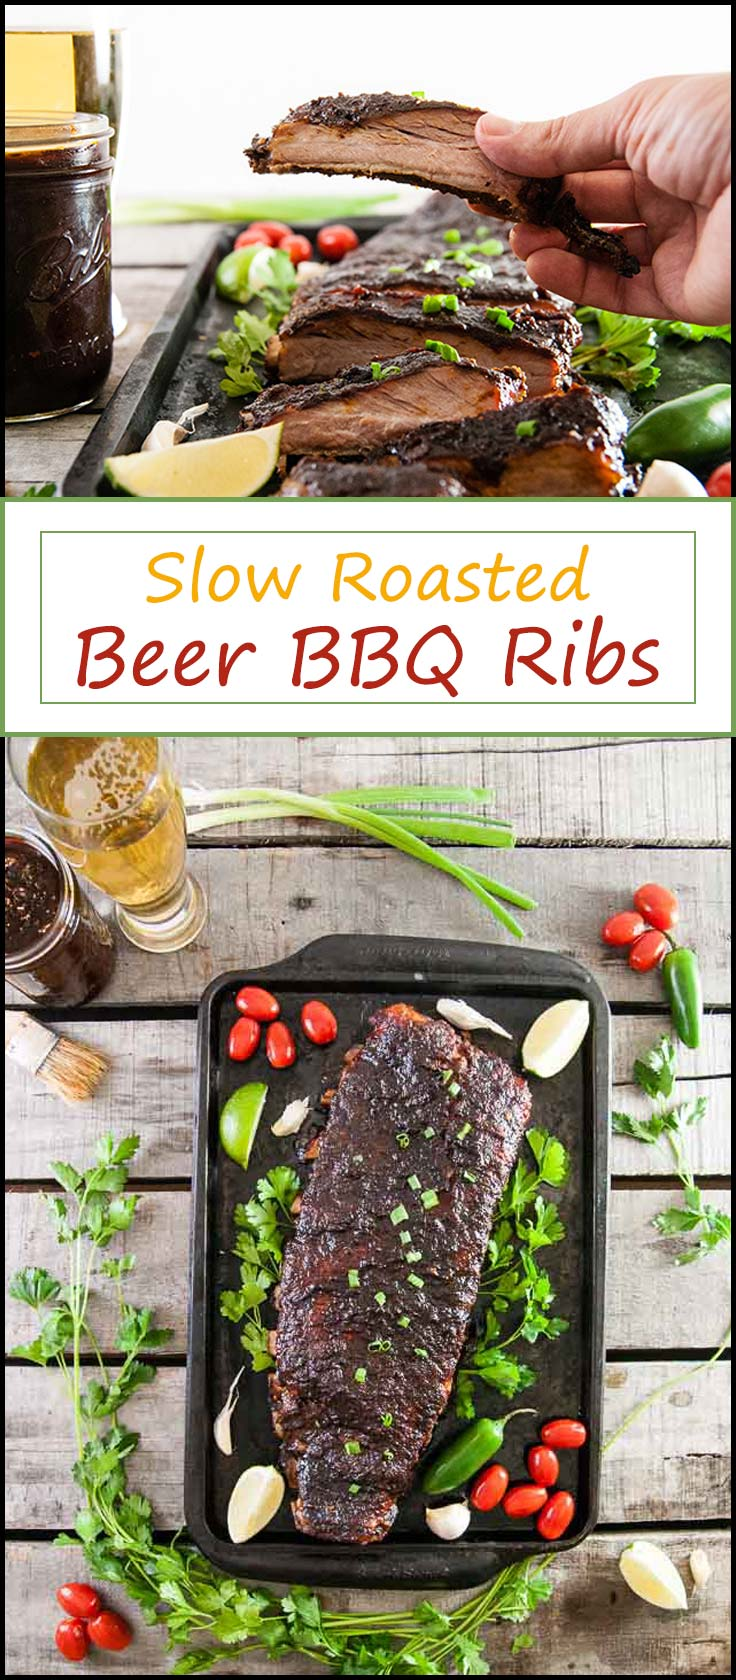 Slow Roasted Beer Barbecue Ribs are the perfect summer barbecue recipe when you don't feel like grilling from www.seasonedsprinkles.com